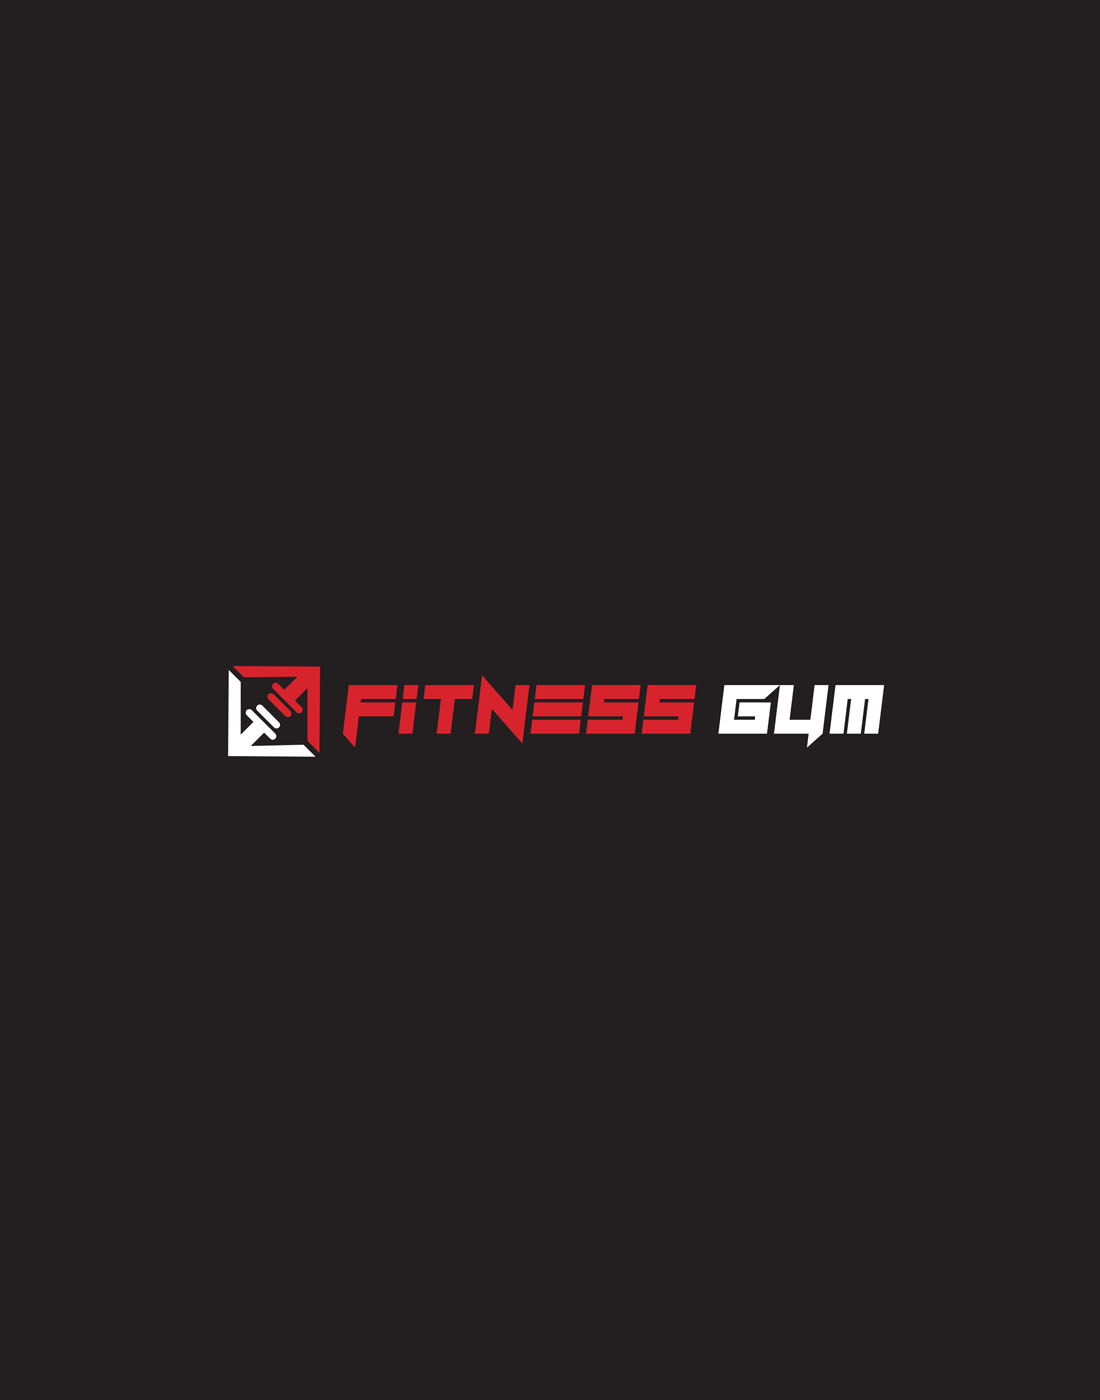 GYM_LOGO_TEMPLATE